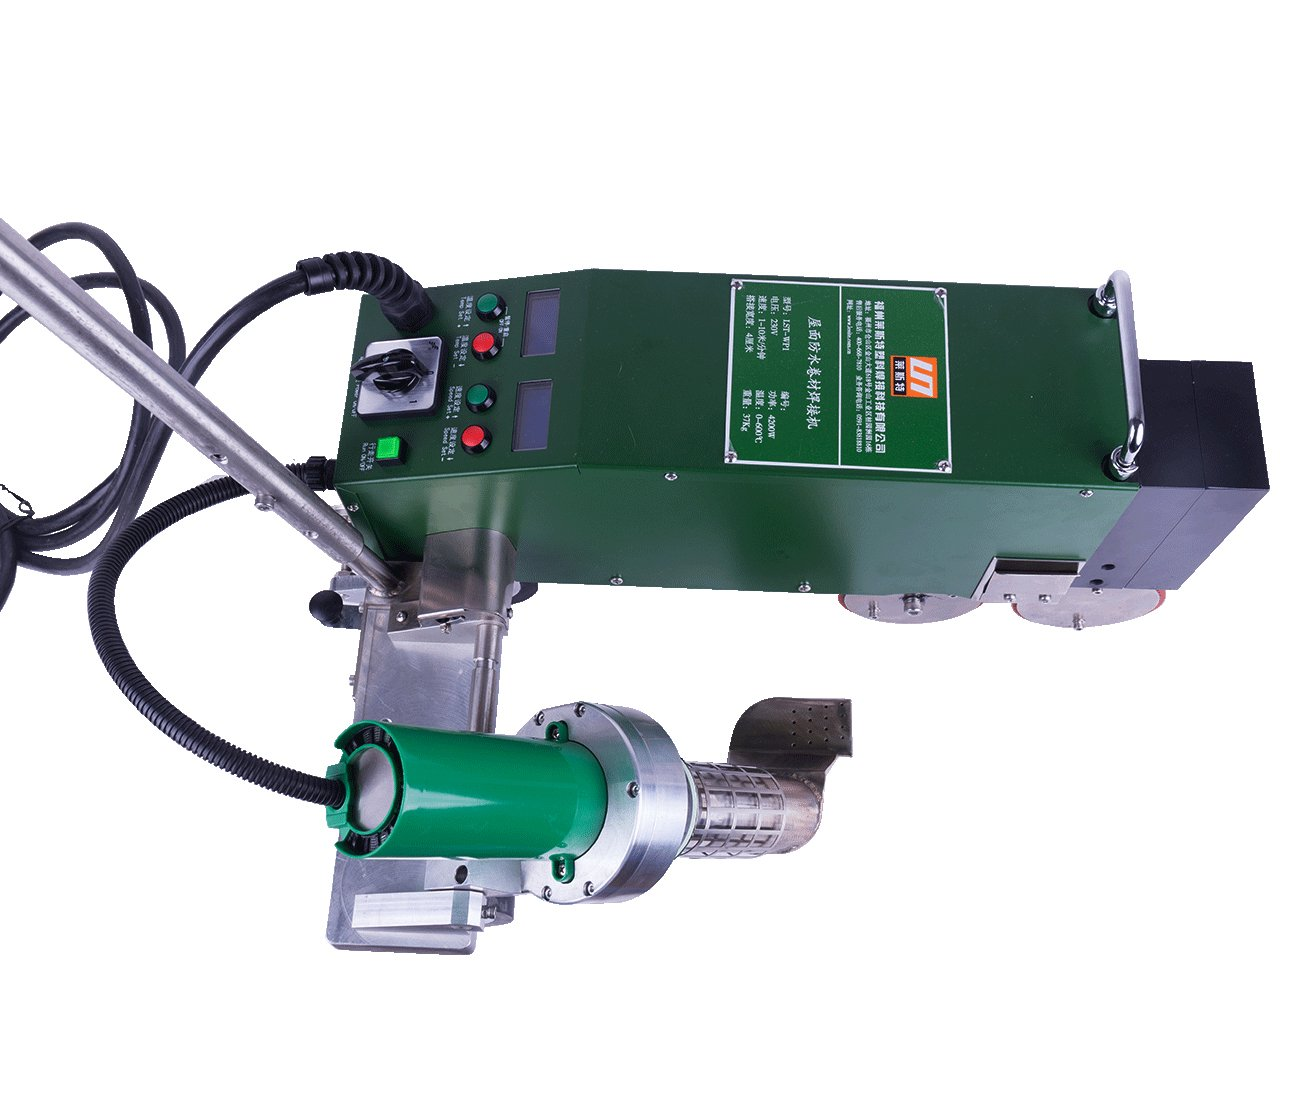 BAK RiOn 120V with 40 mm Nozzle and Metal Toolbox